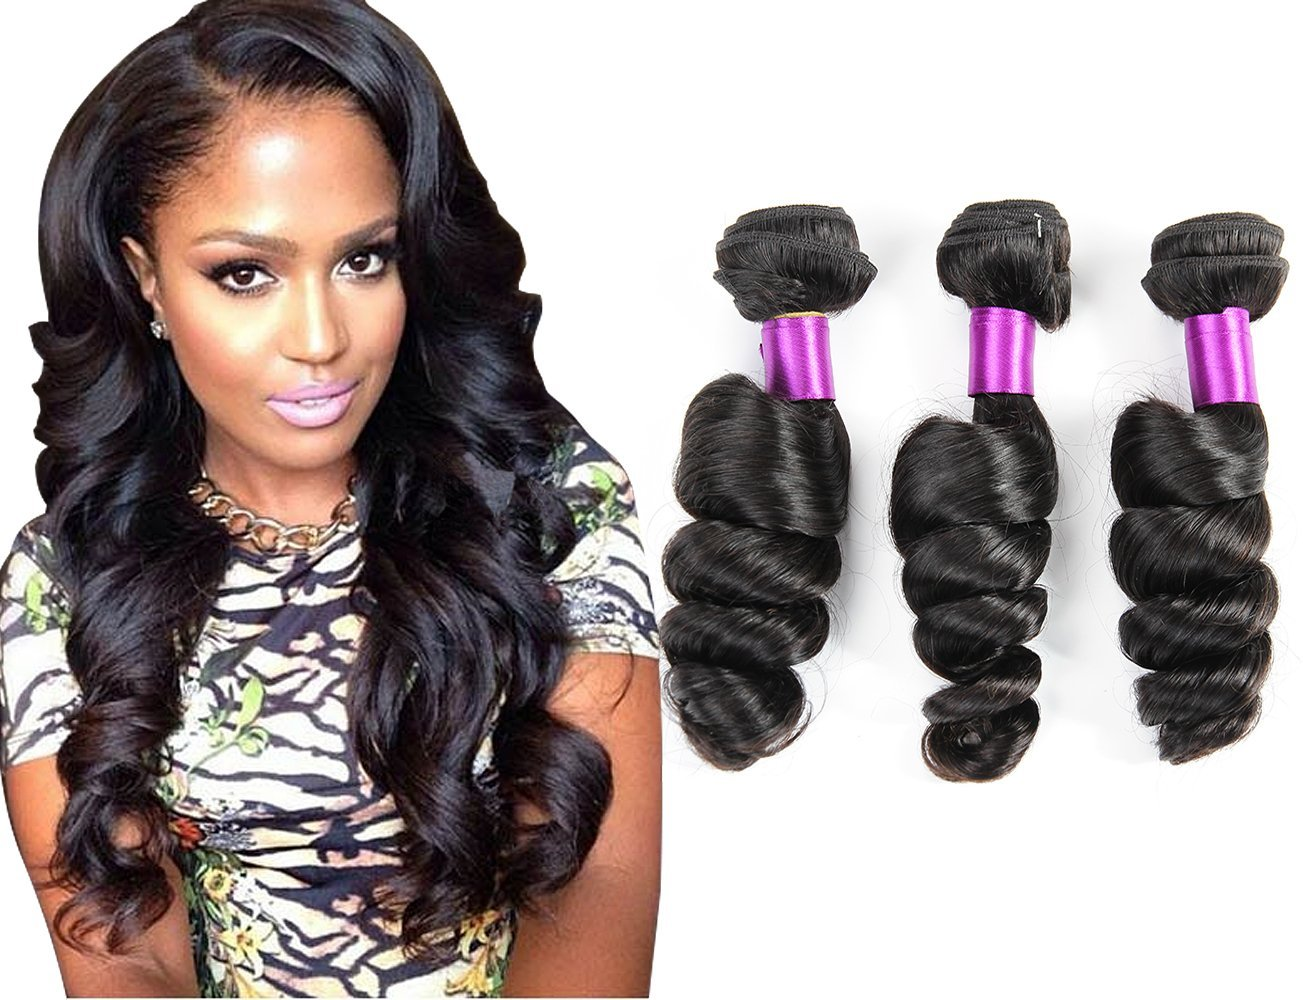 Cheap 22 Inch Weave Hair Find 22 Inch Weave Hair Deals On Line At